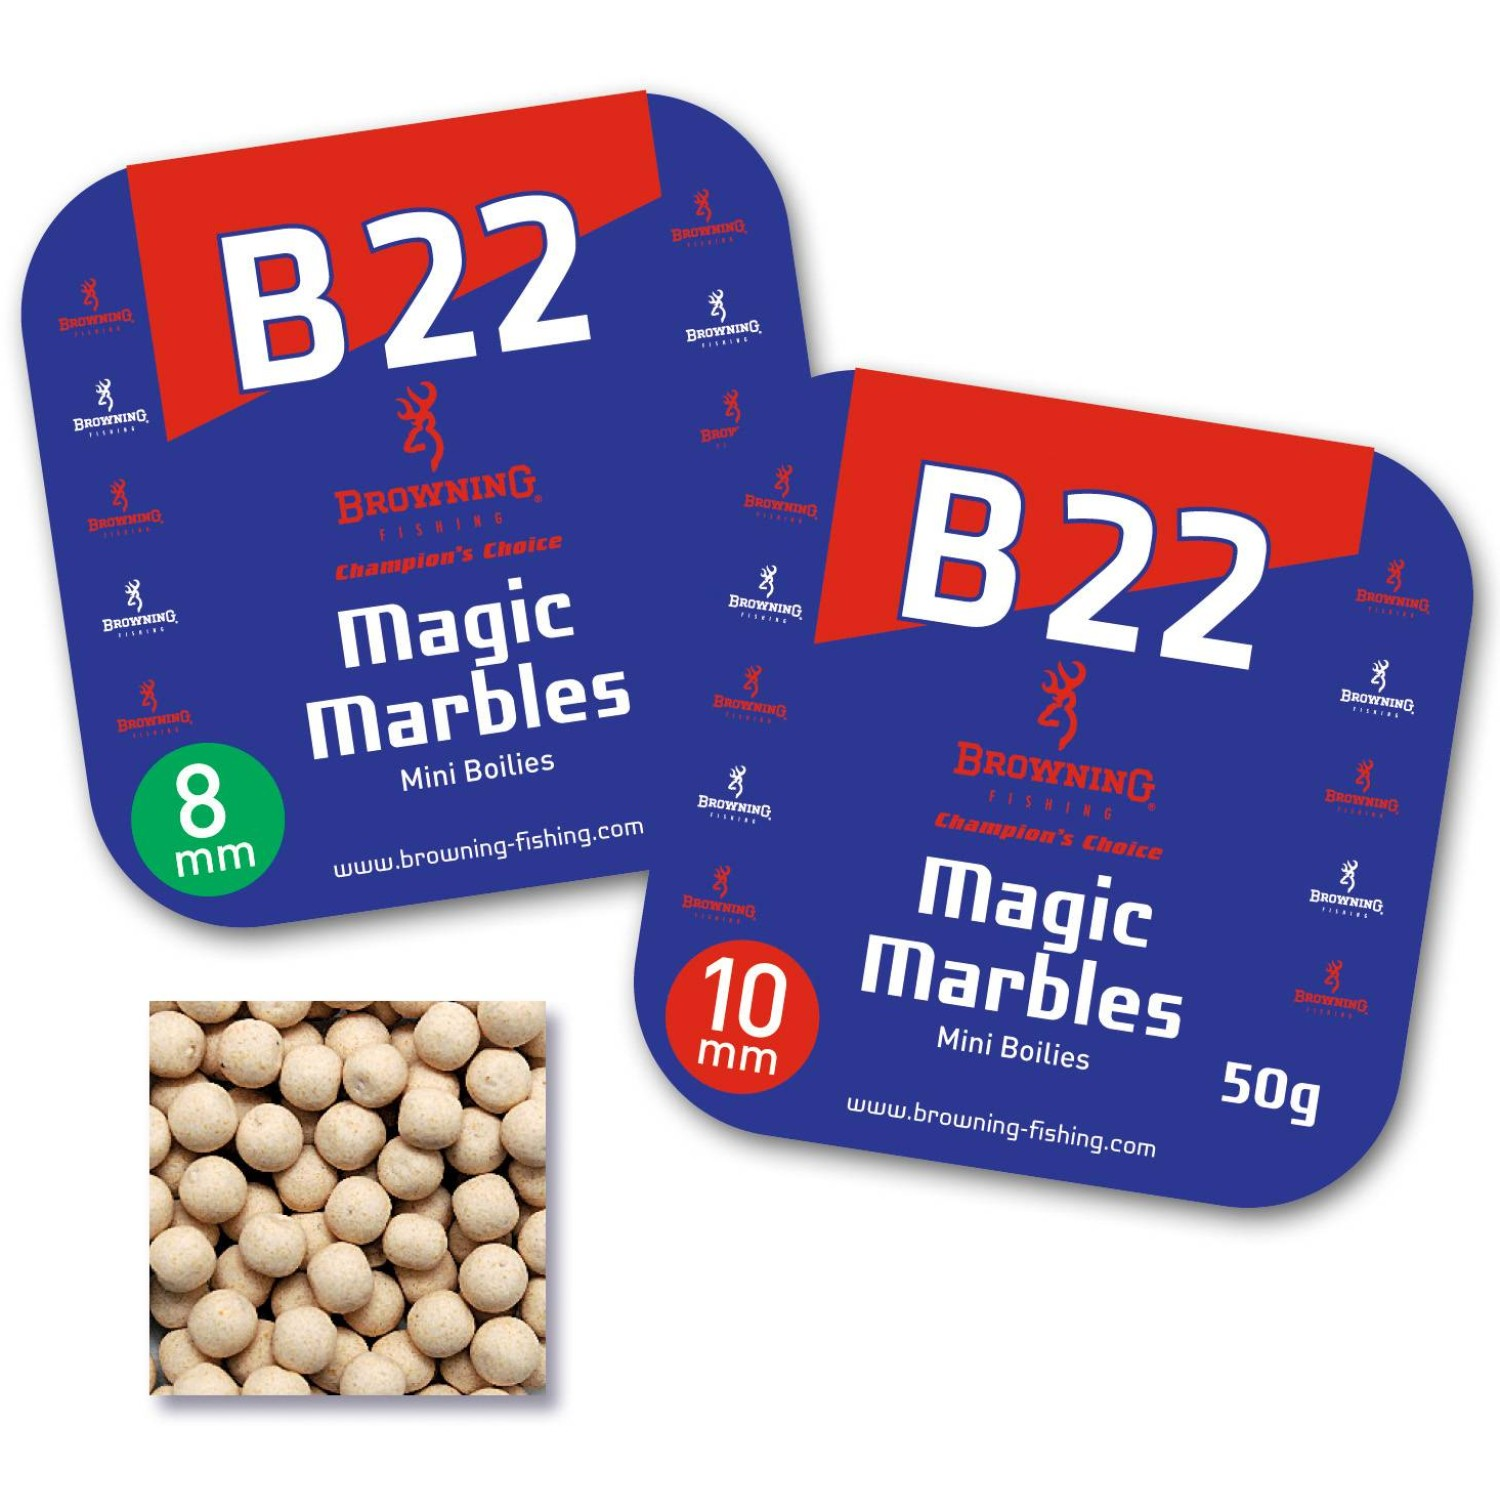 BROWNING B22 Mini Marbles, 50g